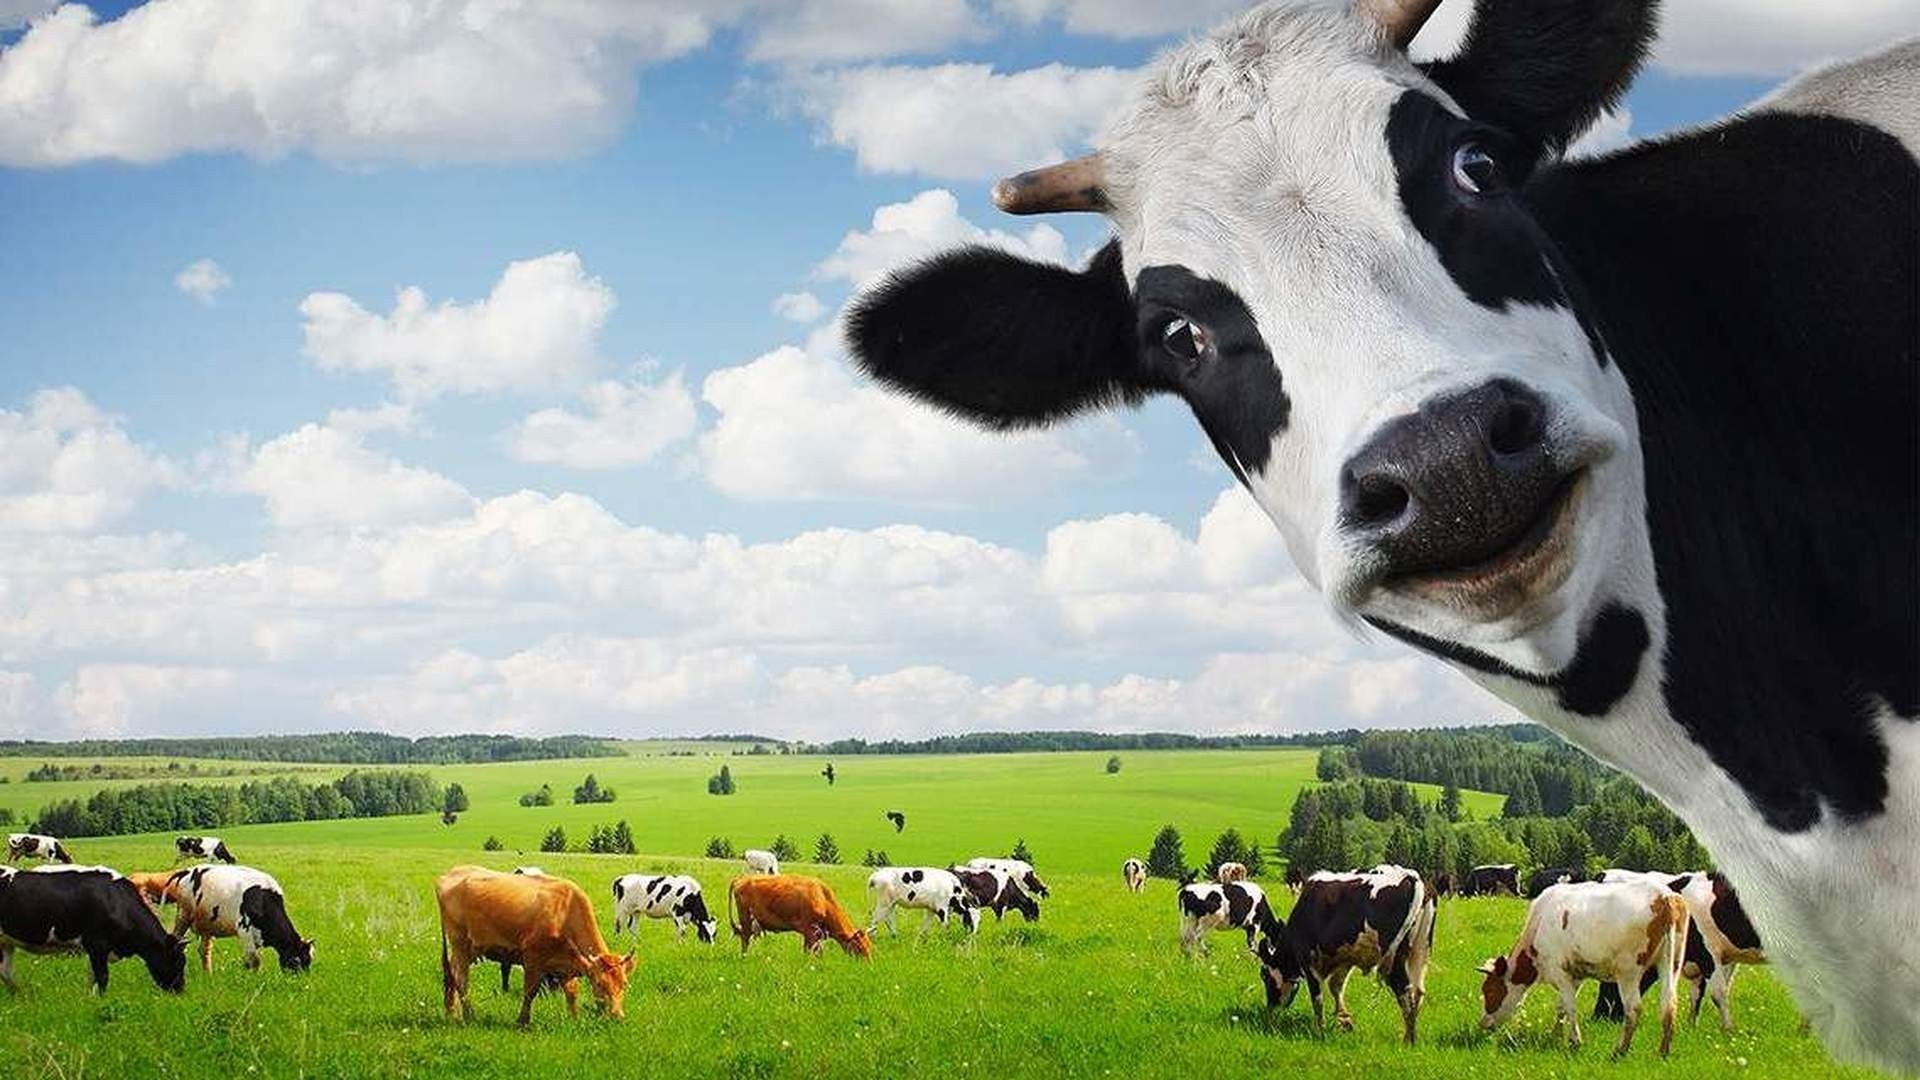 Cow Background Wallpaper